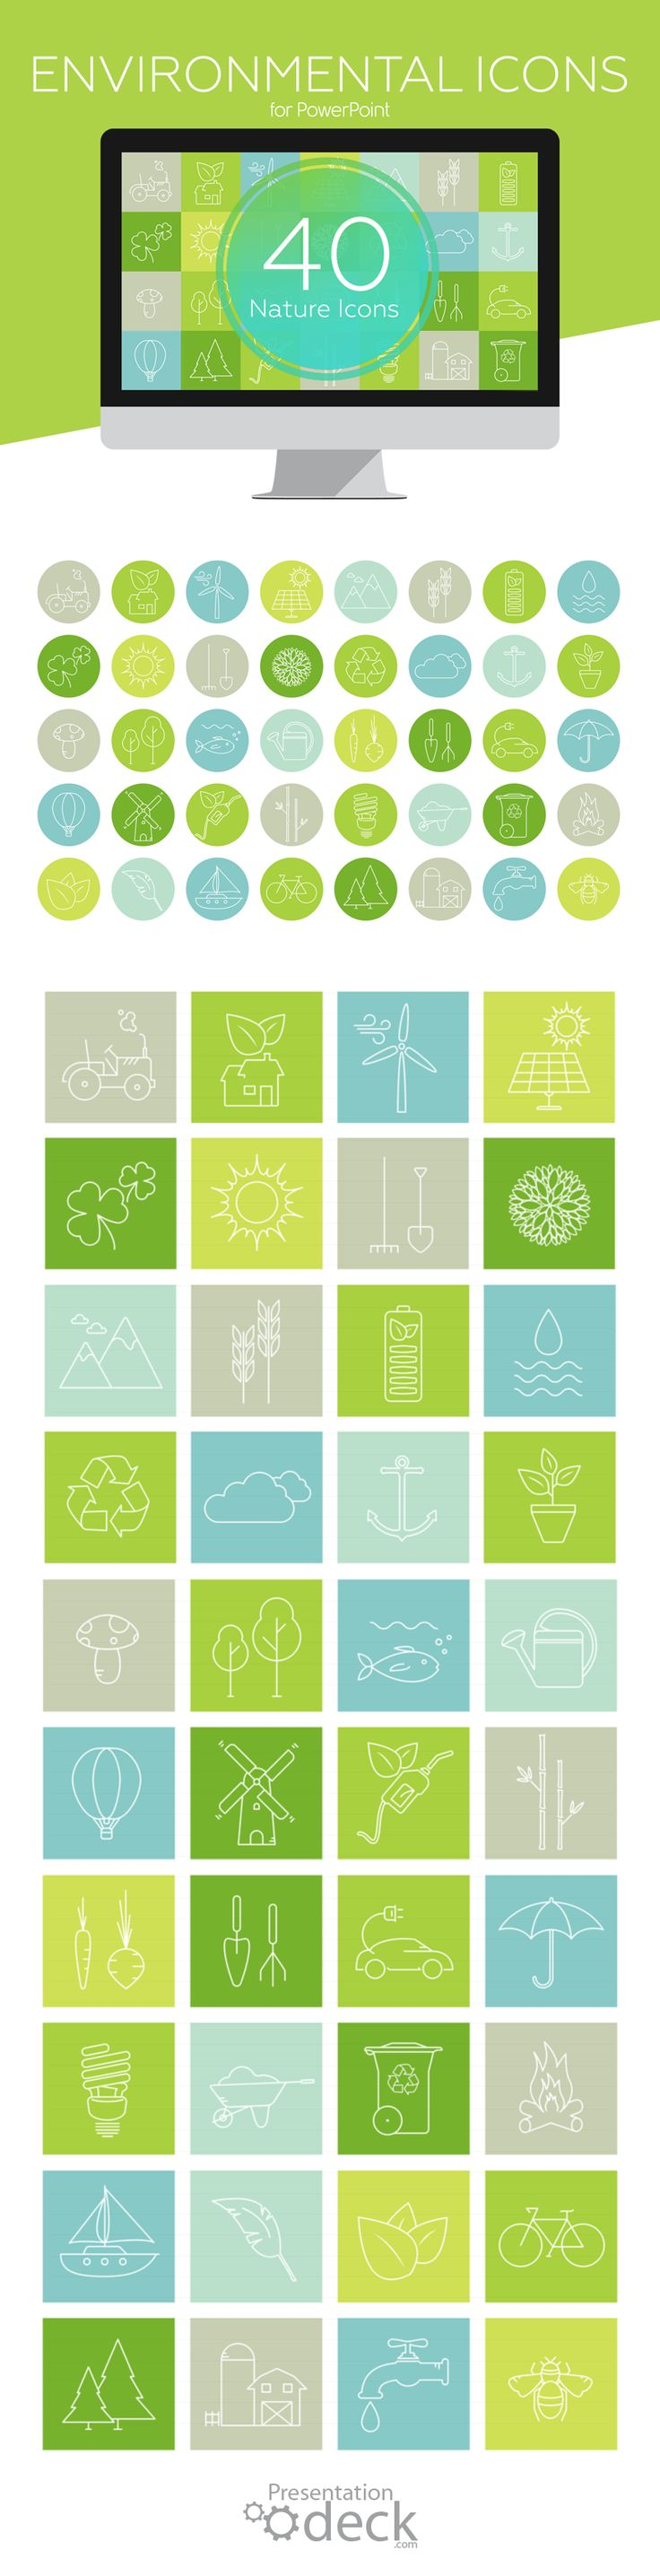 Lovely set of vector-based outline icons ready to use in your PowerPoint presentations on global warming, forest conservation, agriculture, etc.